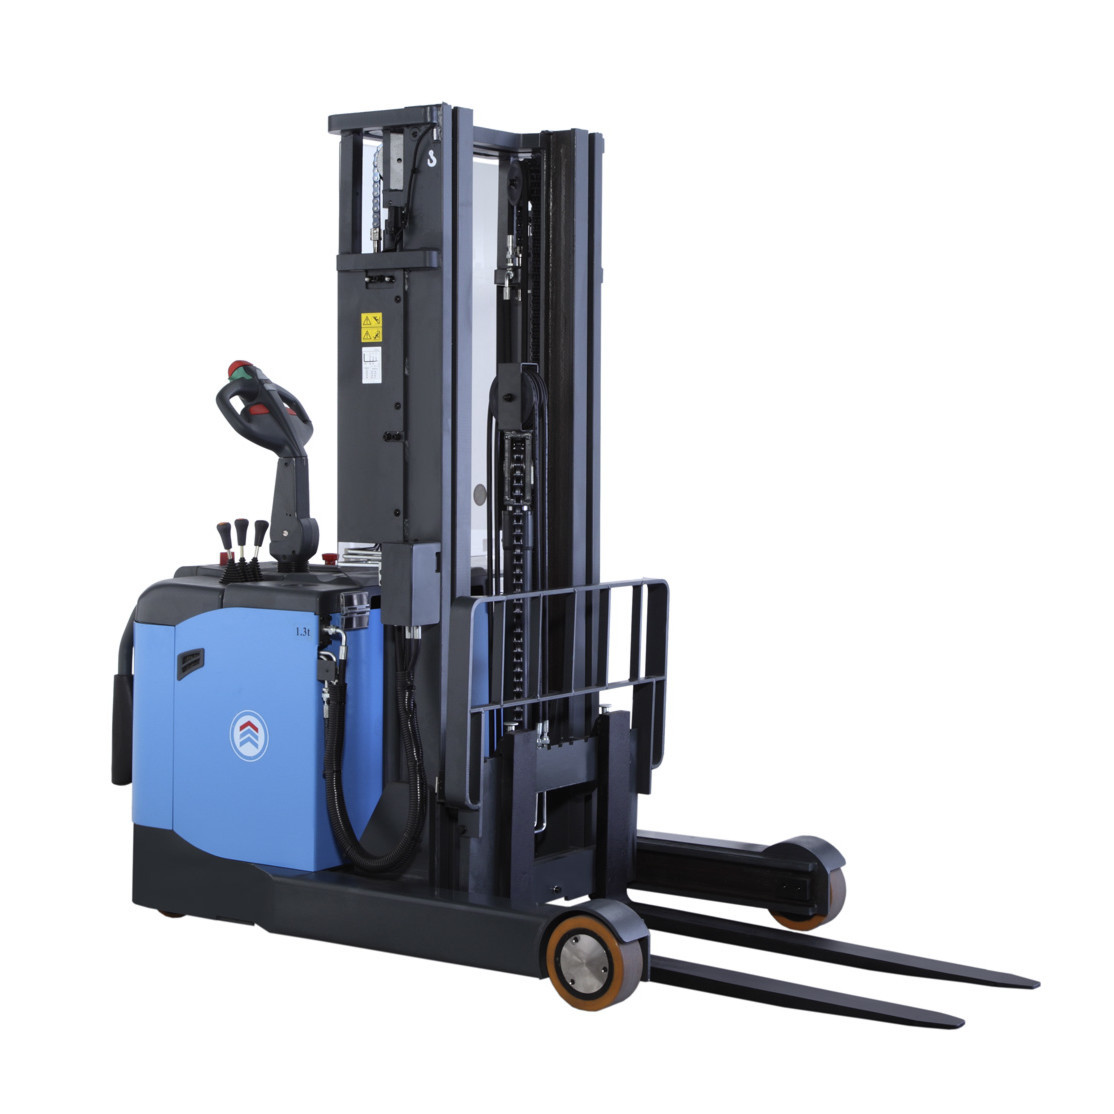 Powered Pallet Truck Reach Pallet Stacker With 3m Reach 1300kg Lifting Capacity